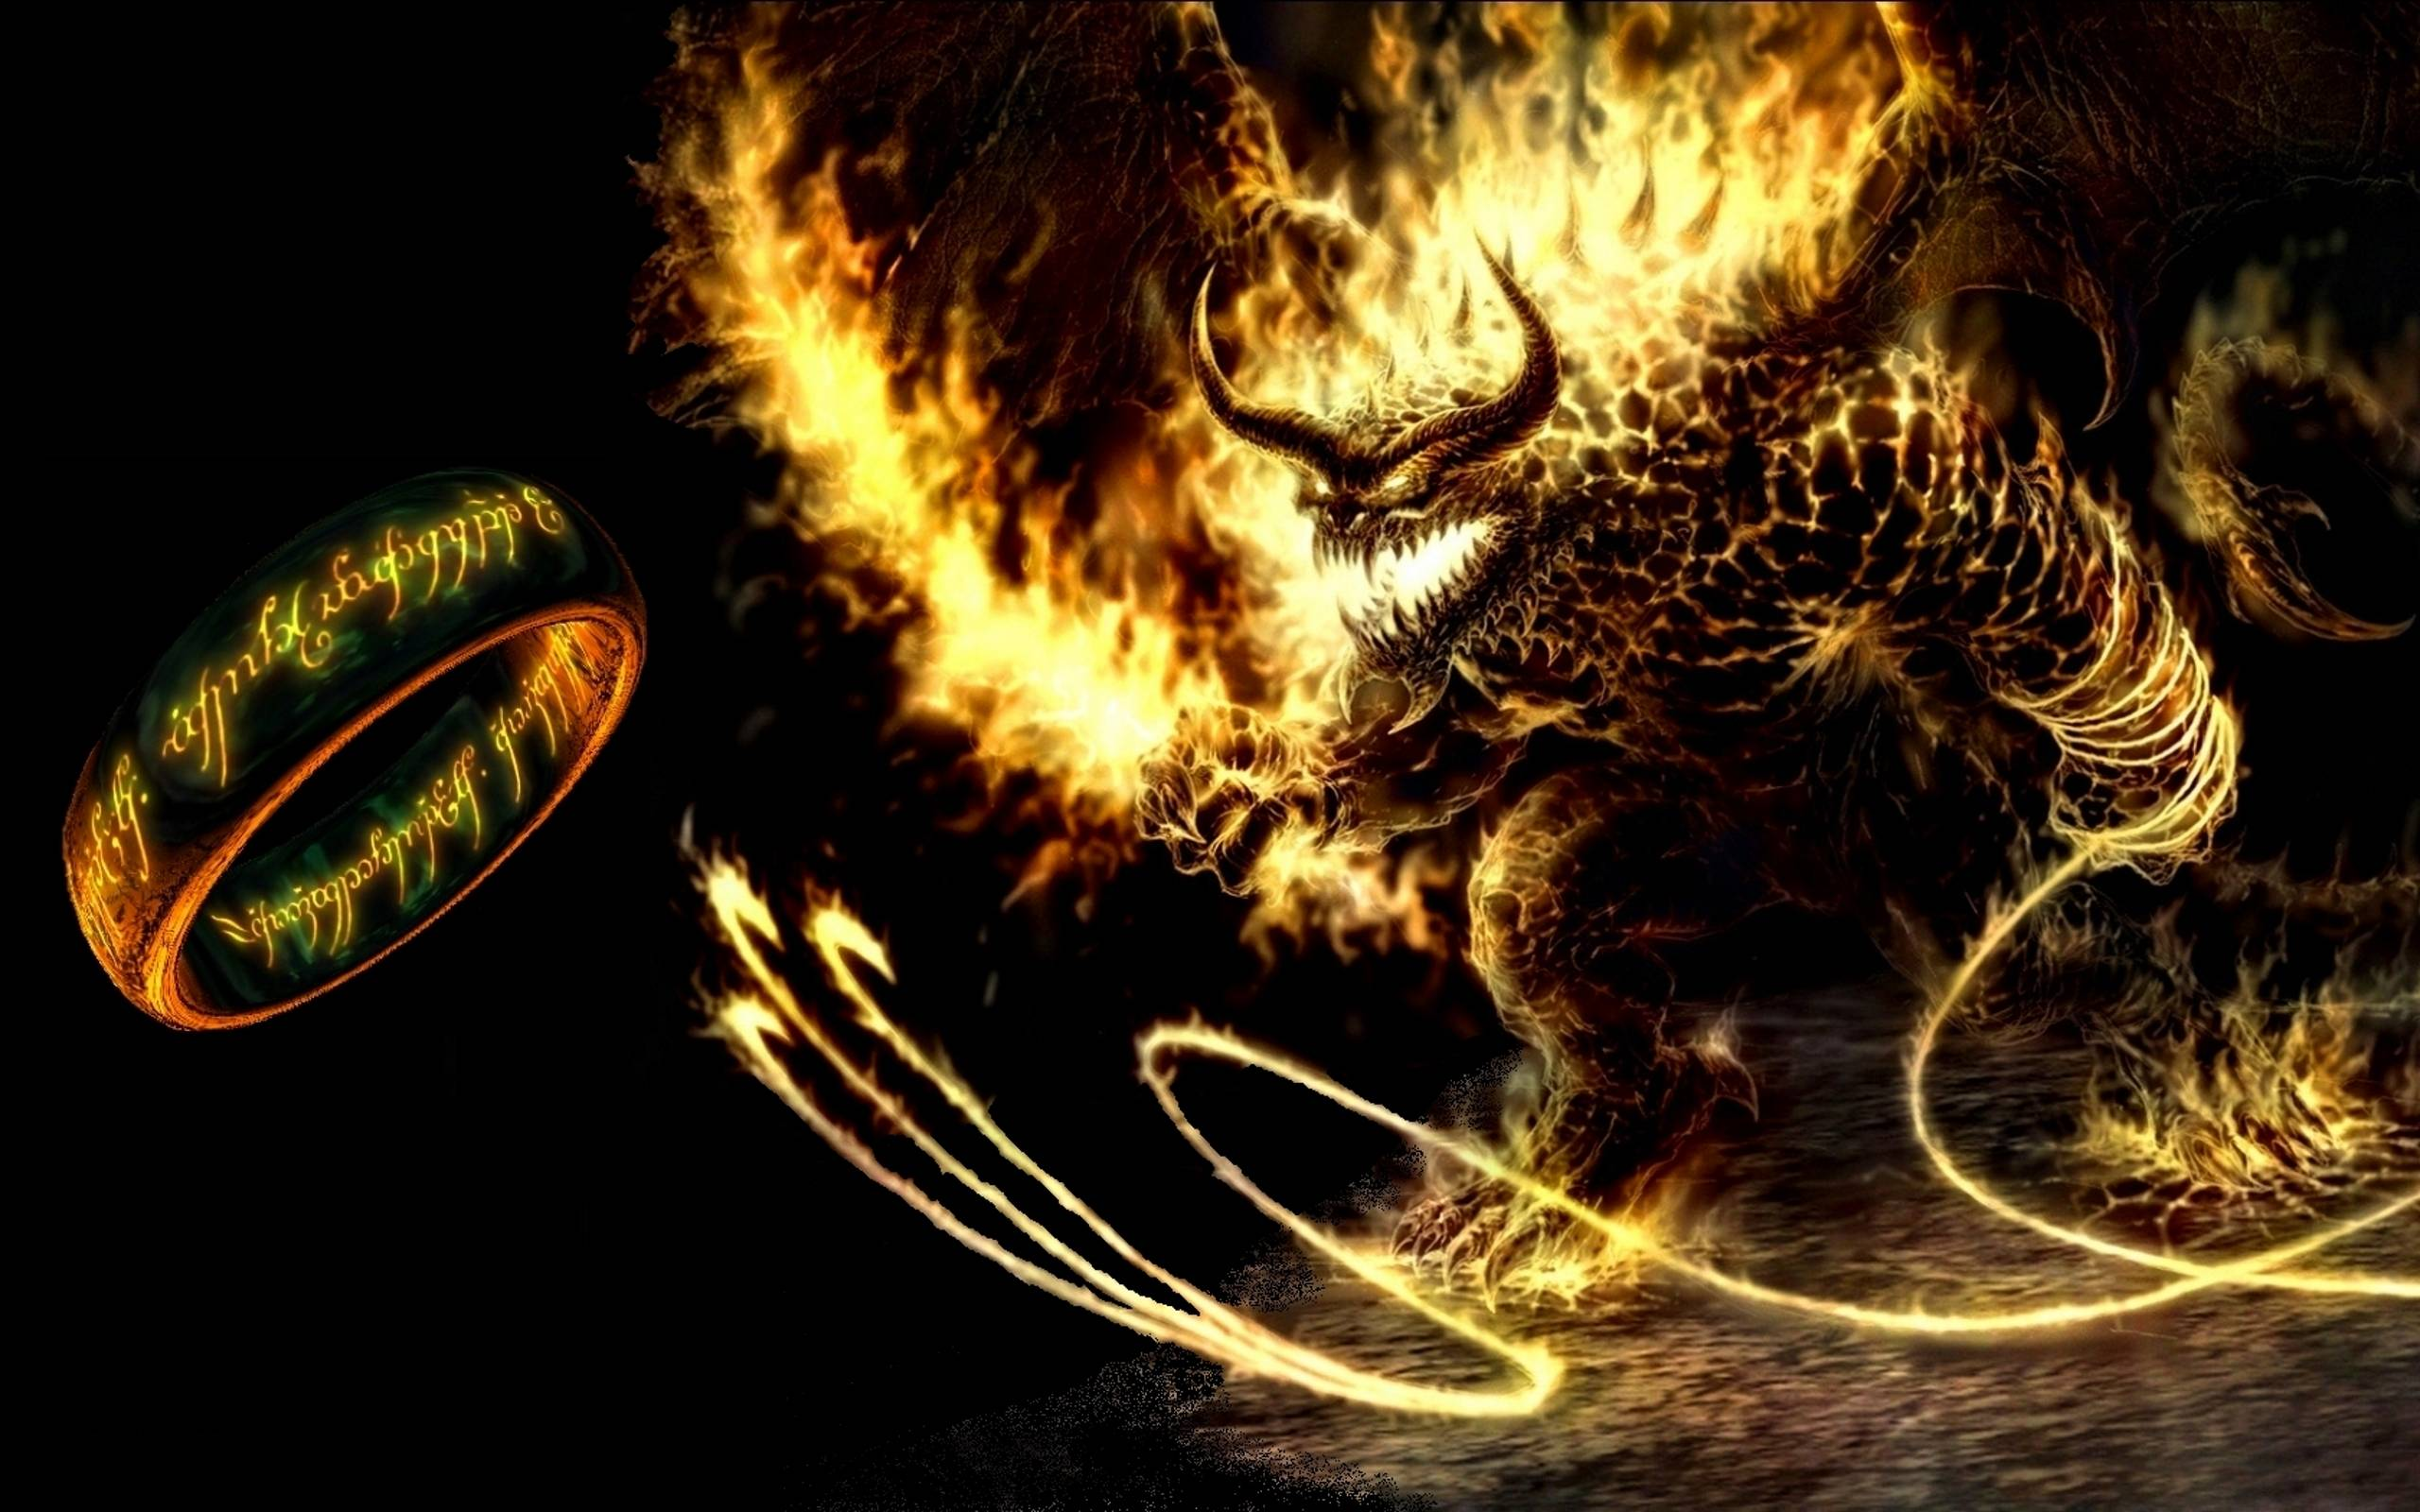 Balrog - Lord of the Rings Wallpaper (4801031) - Fanpop